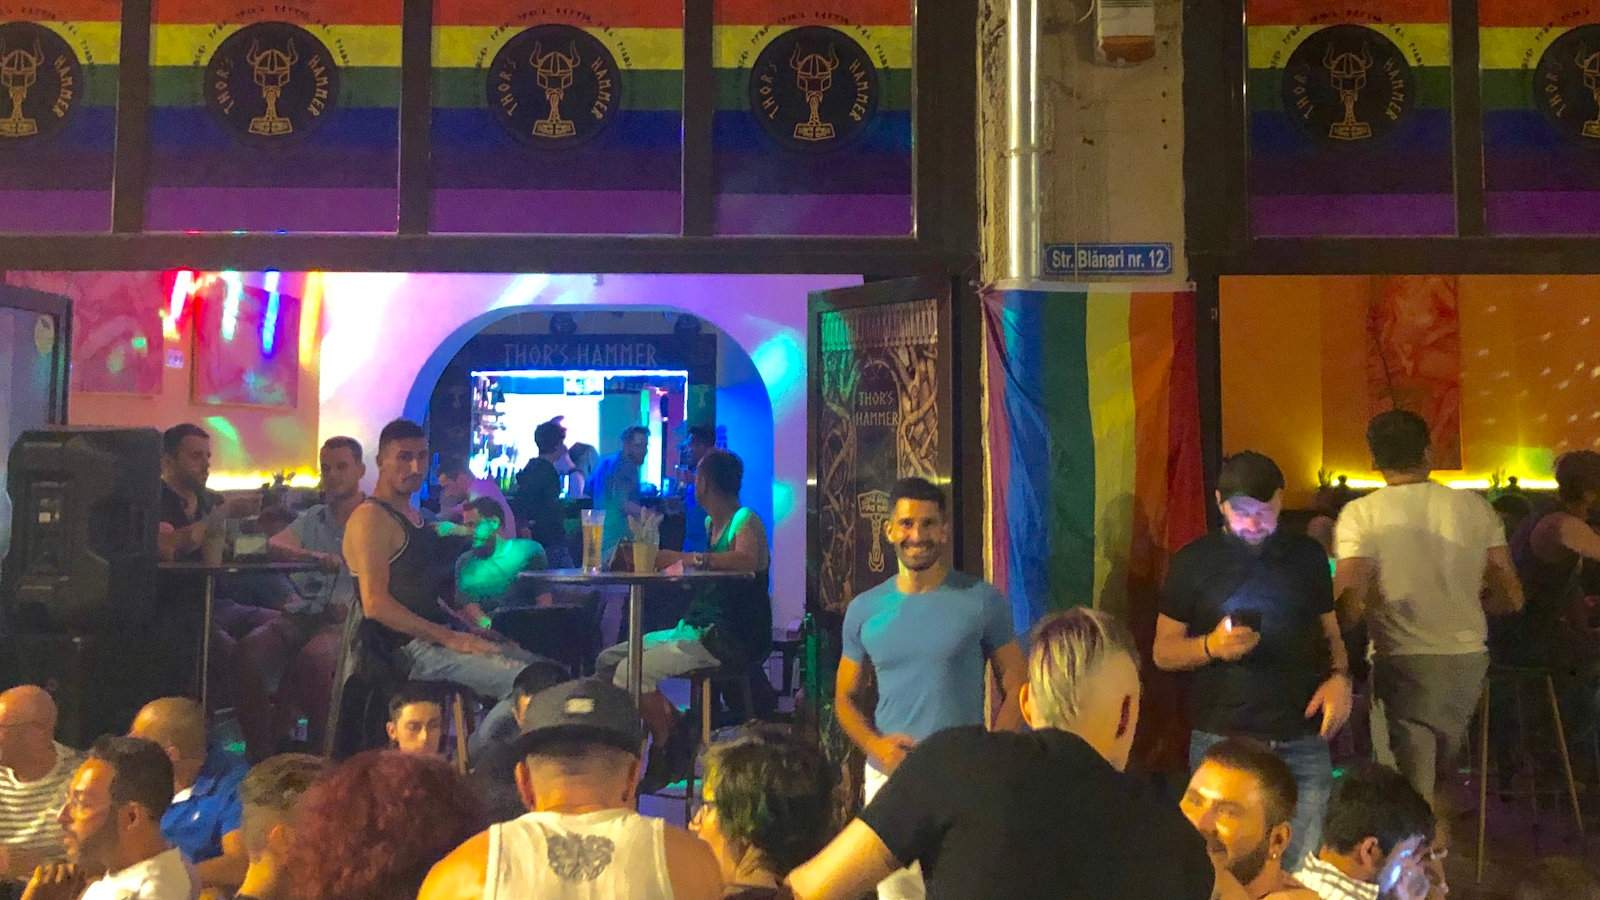 Thor's Hammer gay bar in Bucharest the city's only official gay club